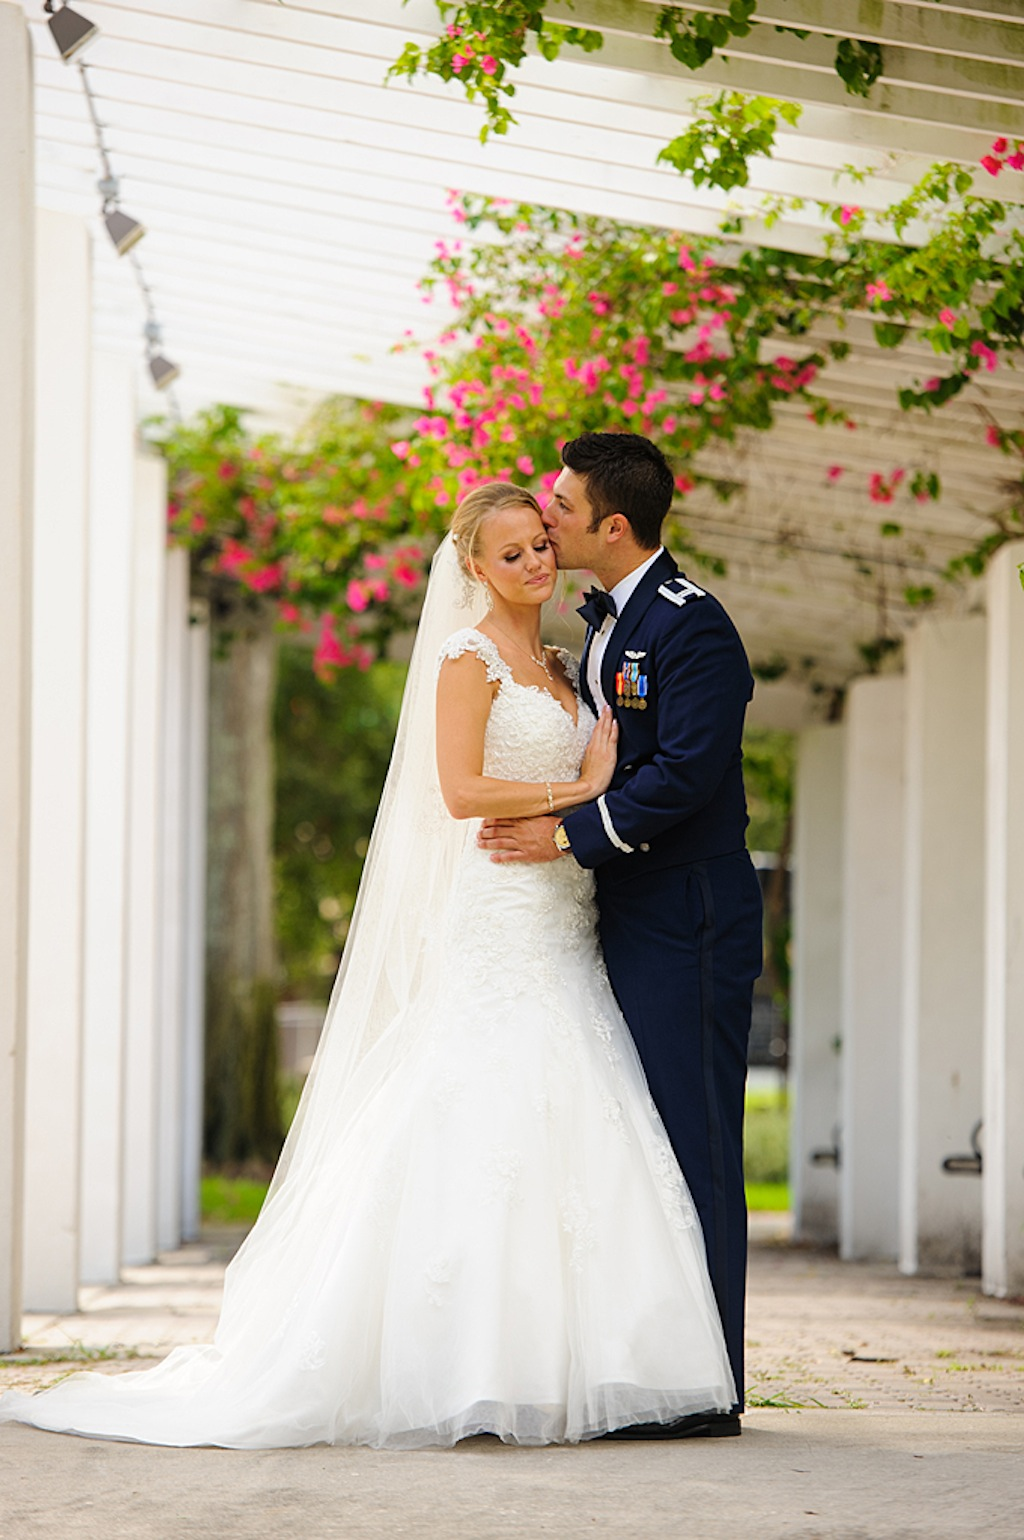 St. Petersburg Bride and Military Groom - Corey Conroy Photography